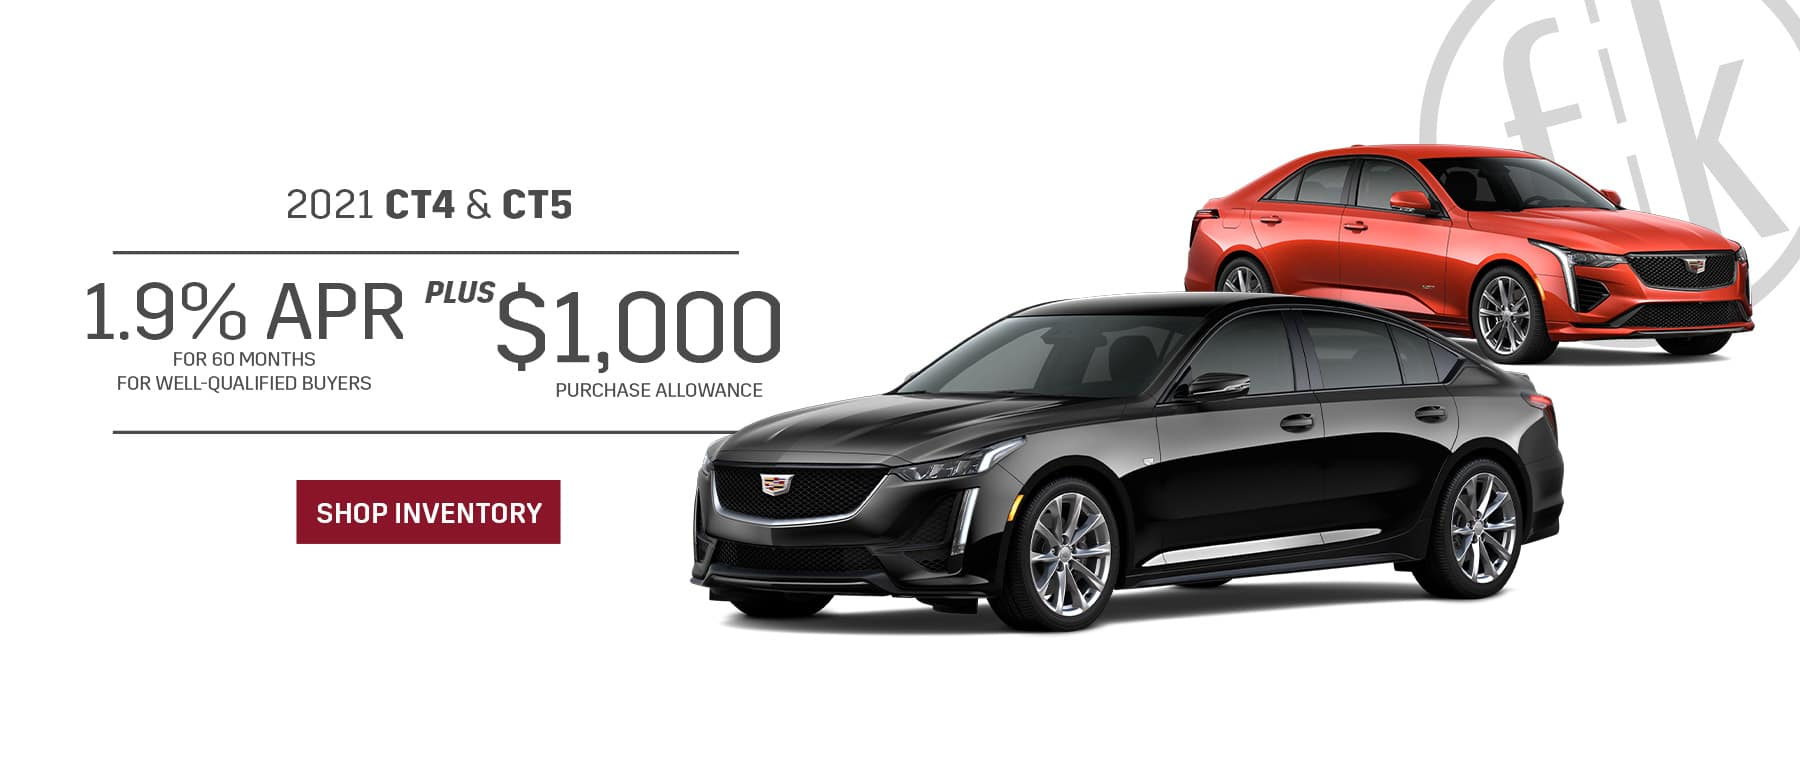 2021 CT4 & CT5 1.9% for 60 mos PLUS $1,000 Purchase Allowance